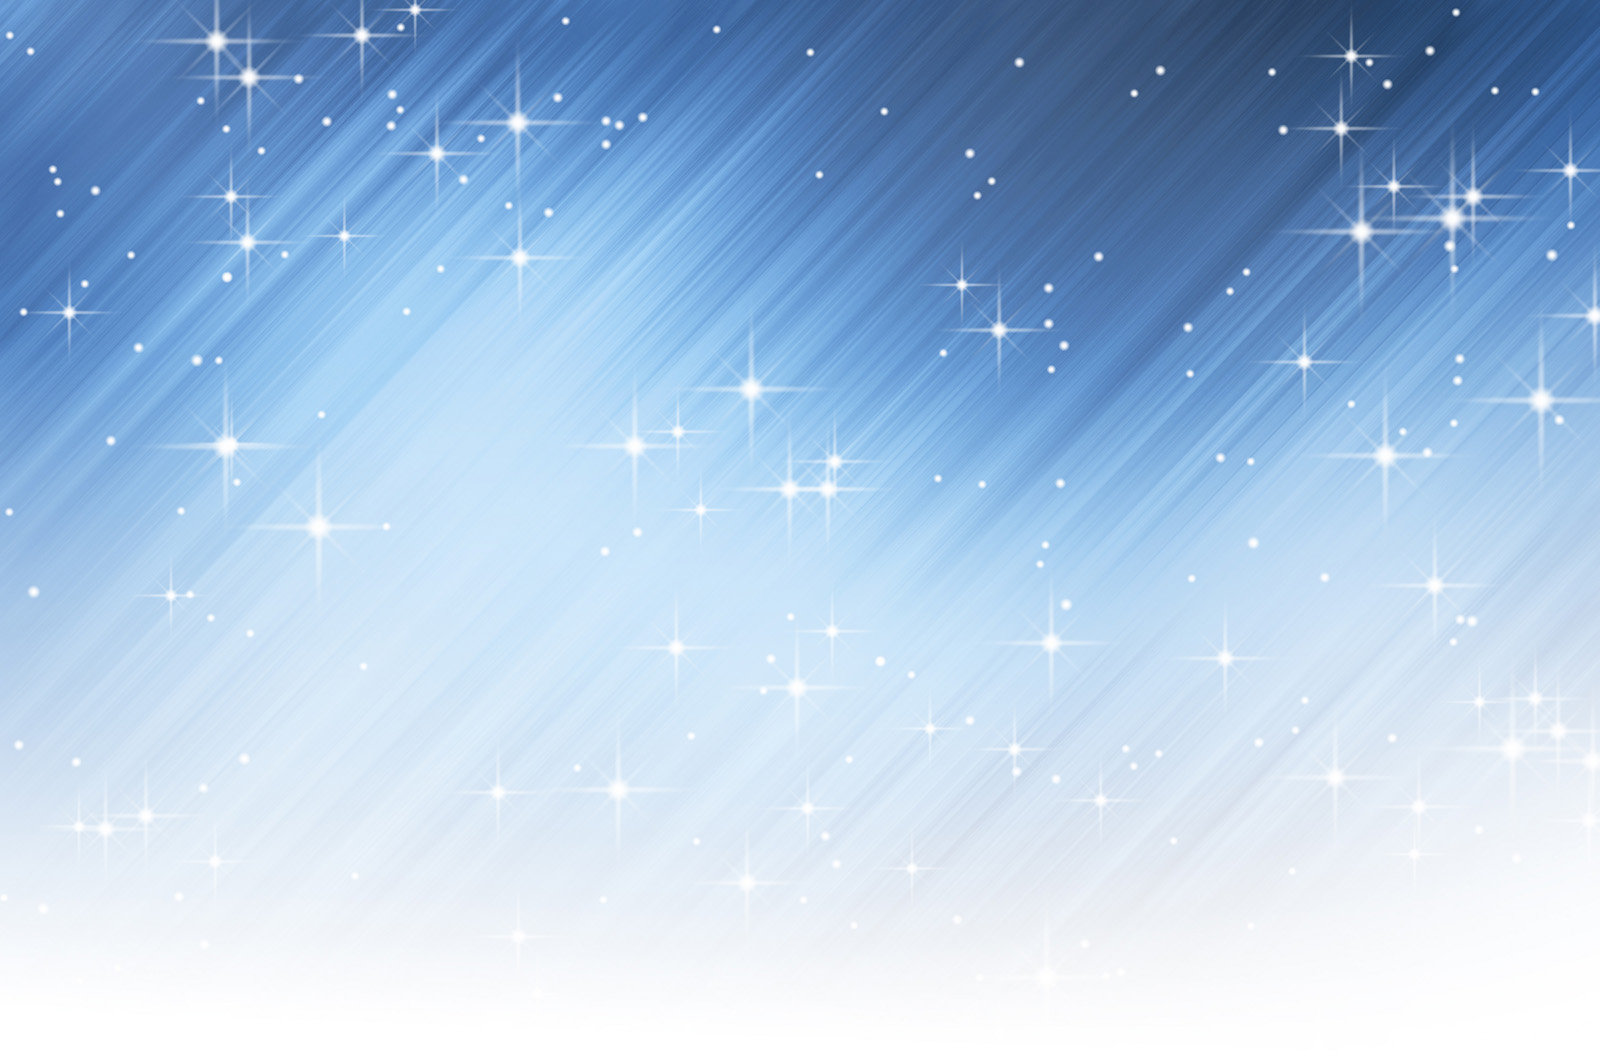 Blue background material 25929